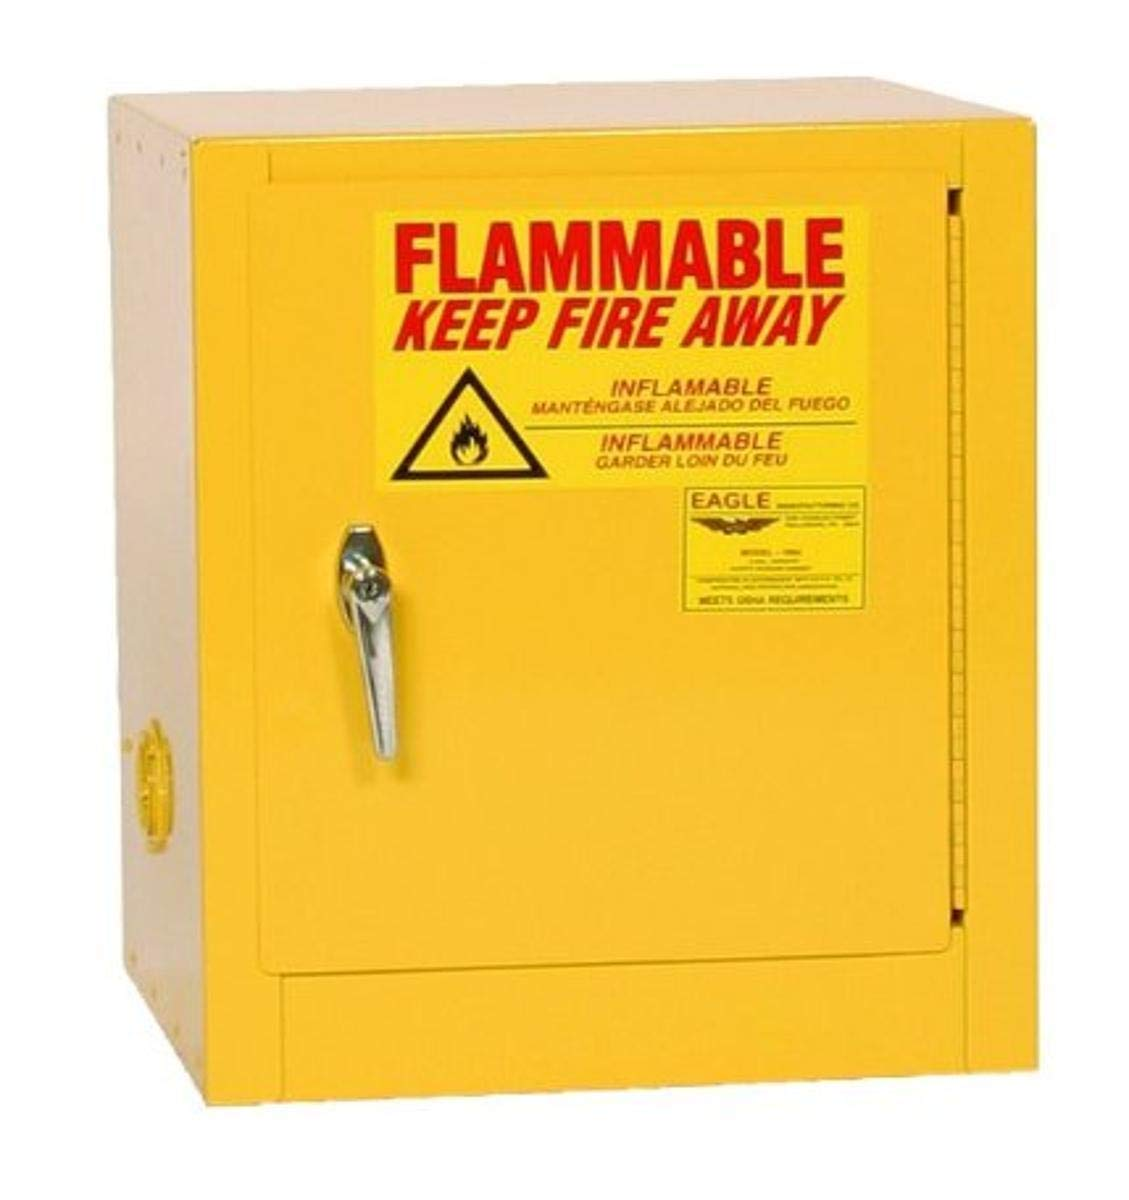 Eagle 1901 Safety Cabinet for Flammable Door 1 C Manual Liquids Cheap super special price sold out